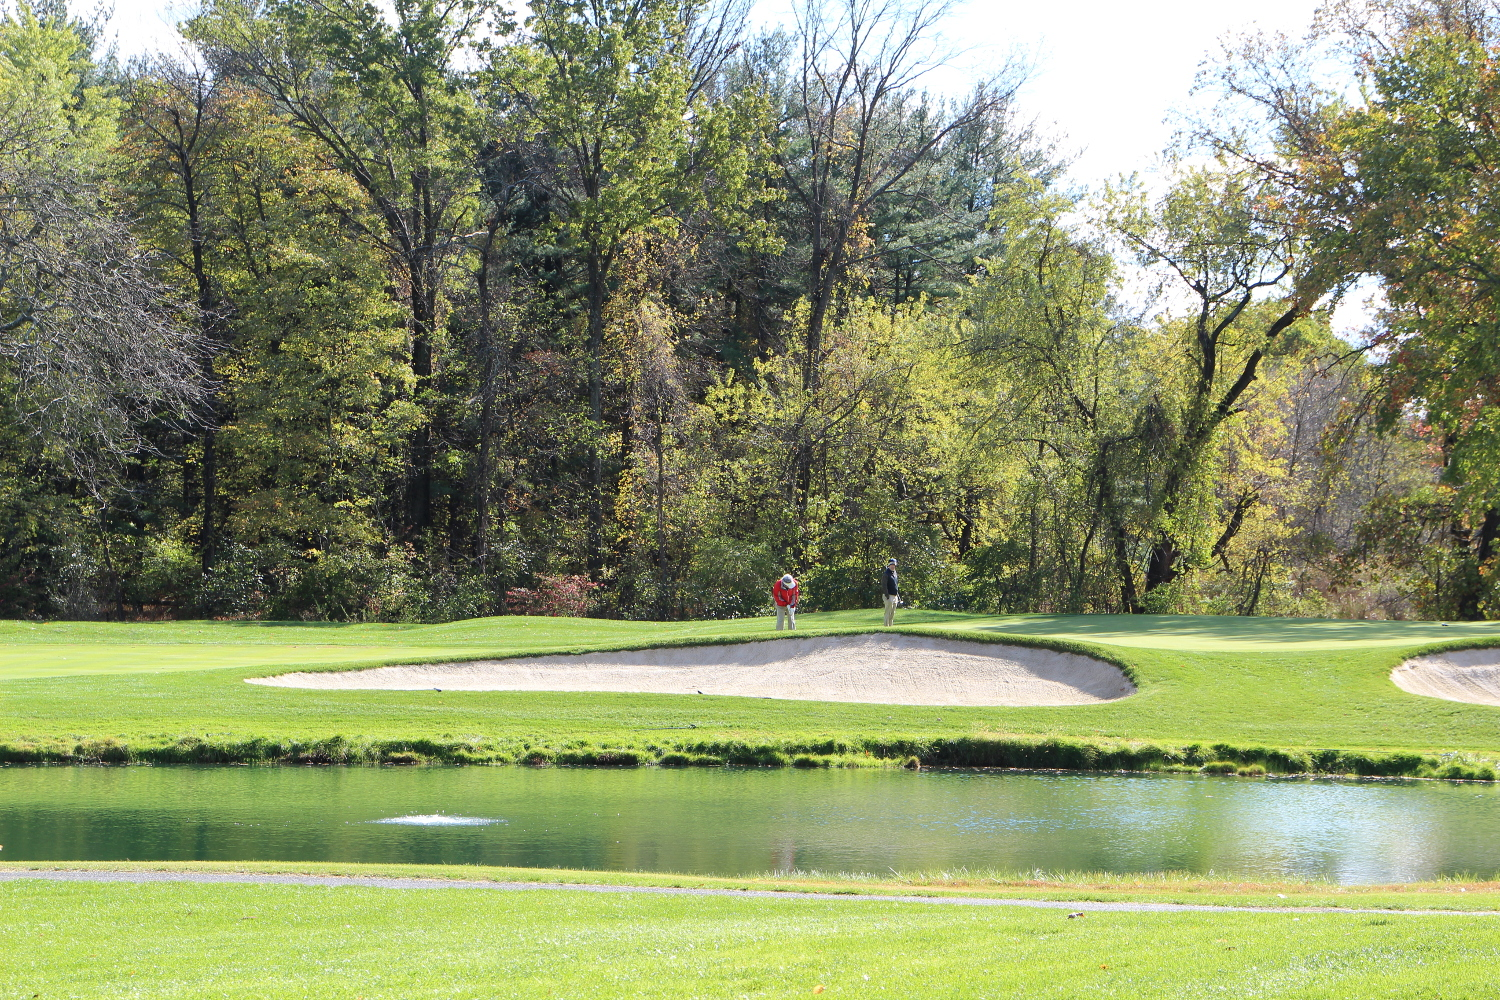 One of Otterbine's subsurface industrial aerators at a golf course